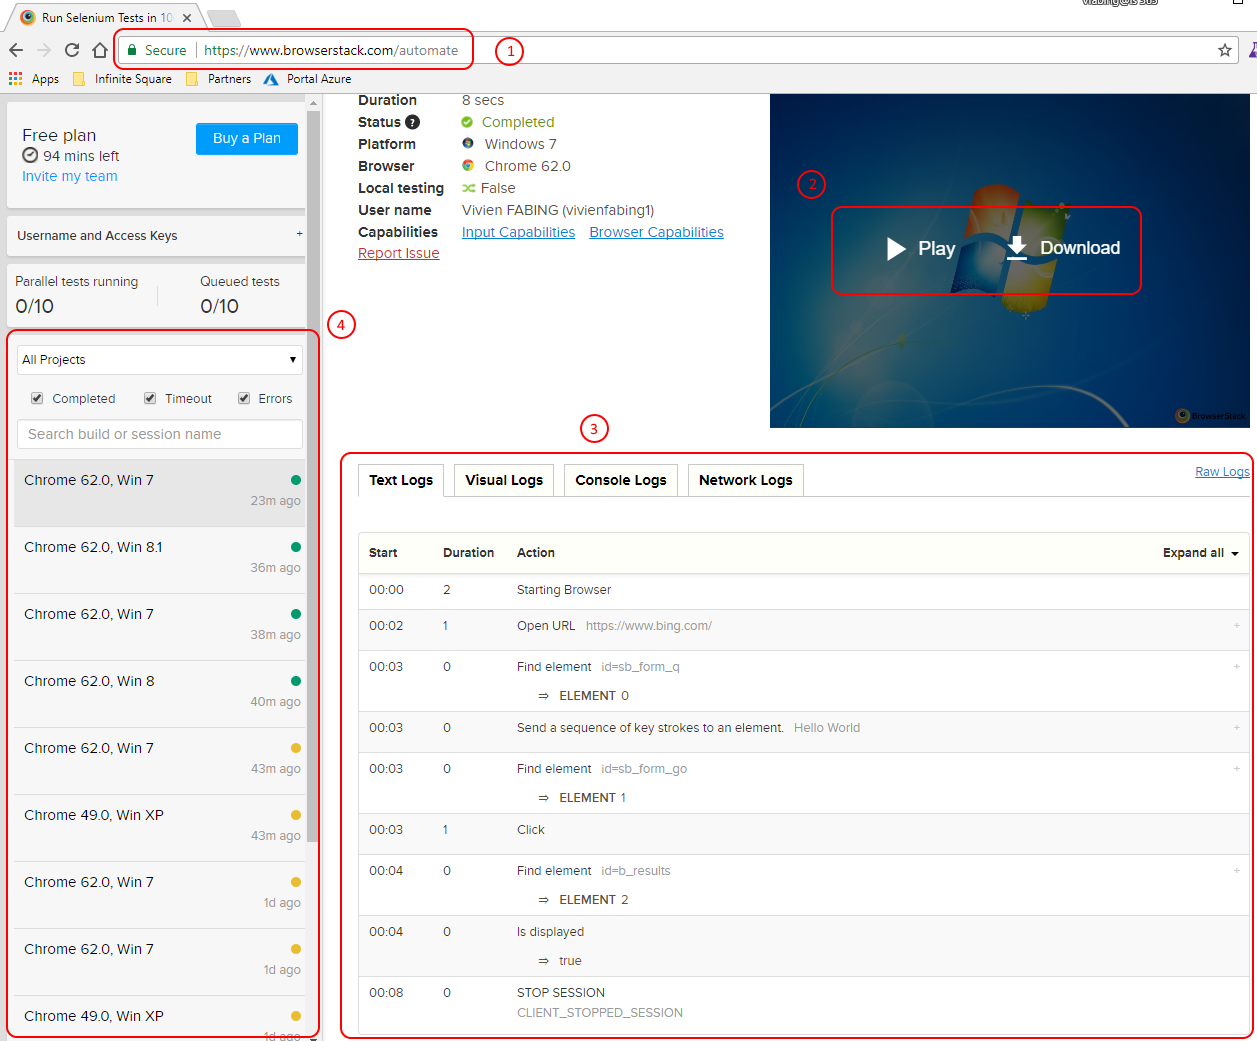 03-visualiser-video-et-logs-browserstack-automate-ed.PNG